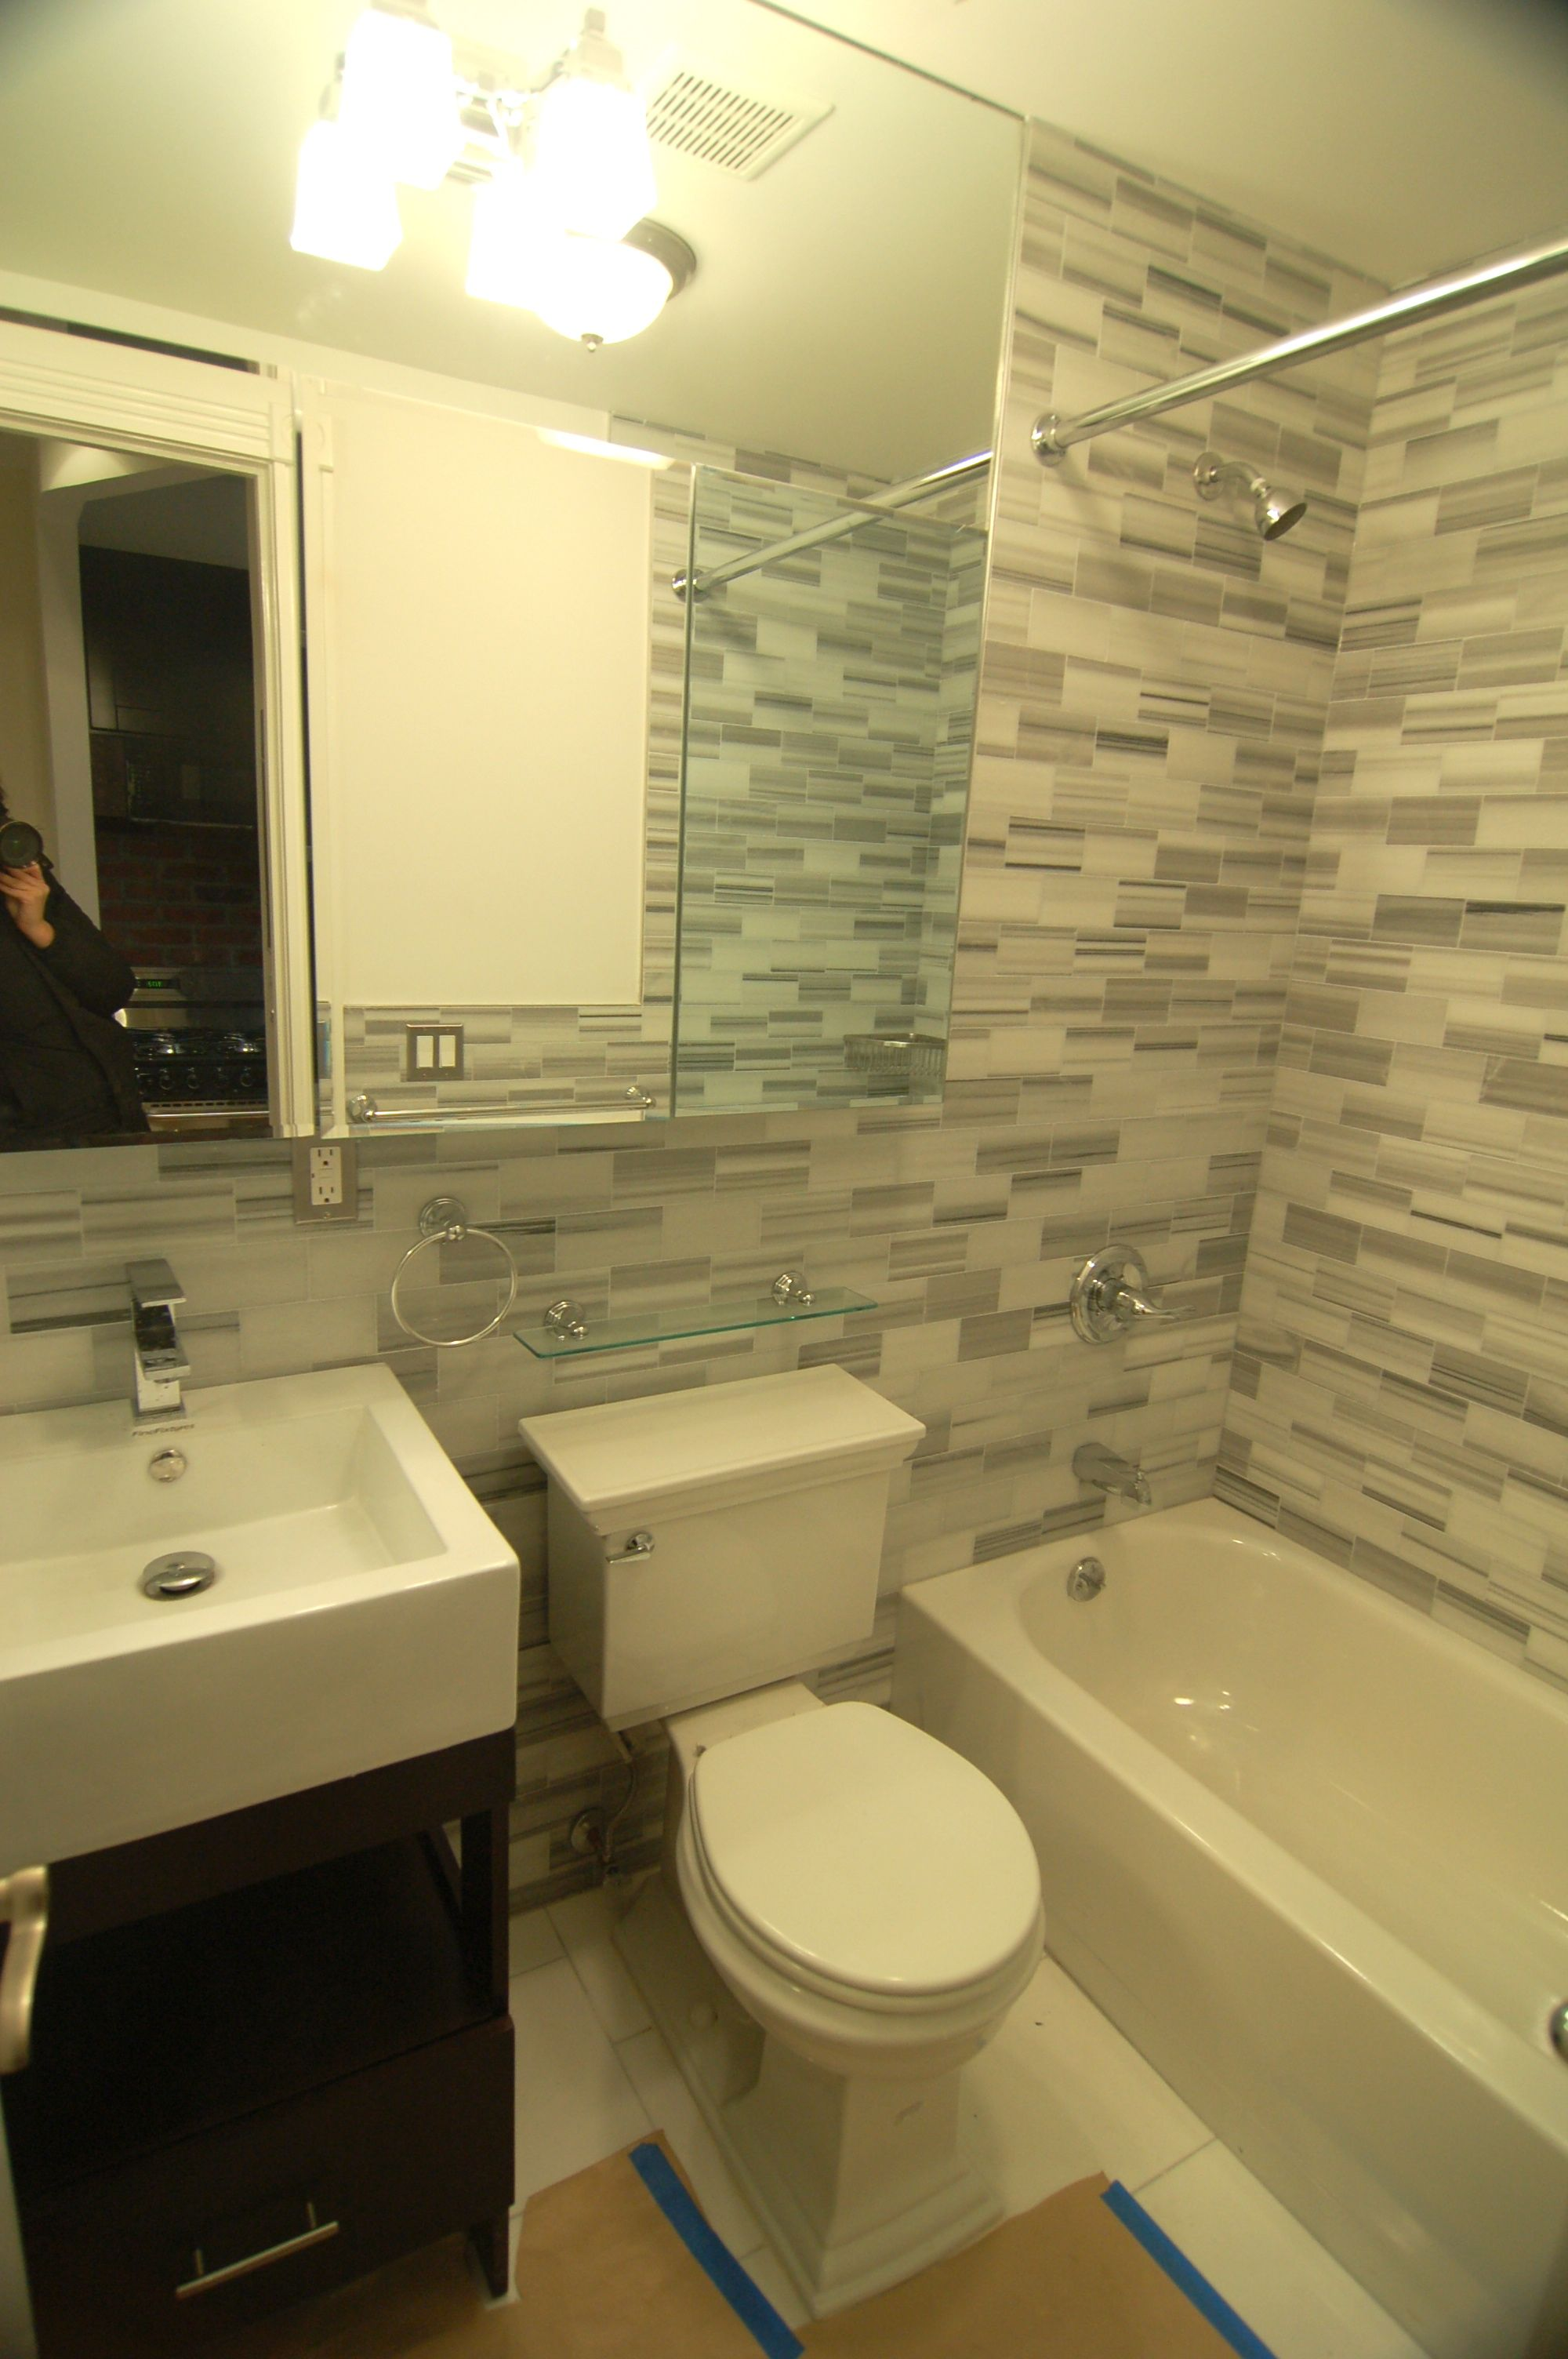 All new marble bathrooms in 9300's 134 Orchard building. #LES #Lowereastside | Marble bathroom ...